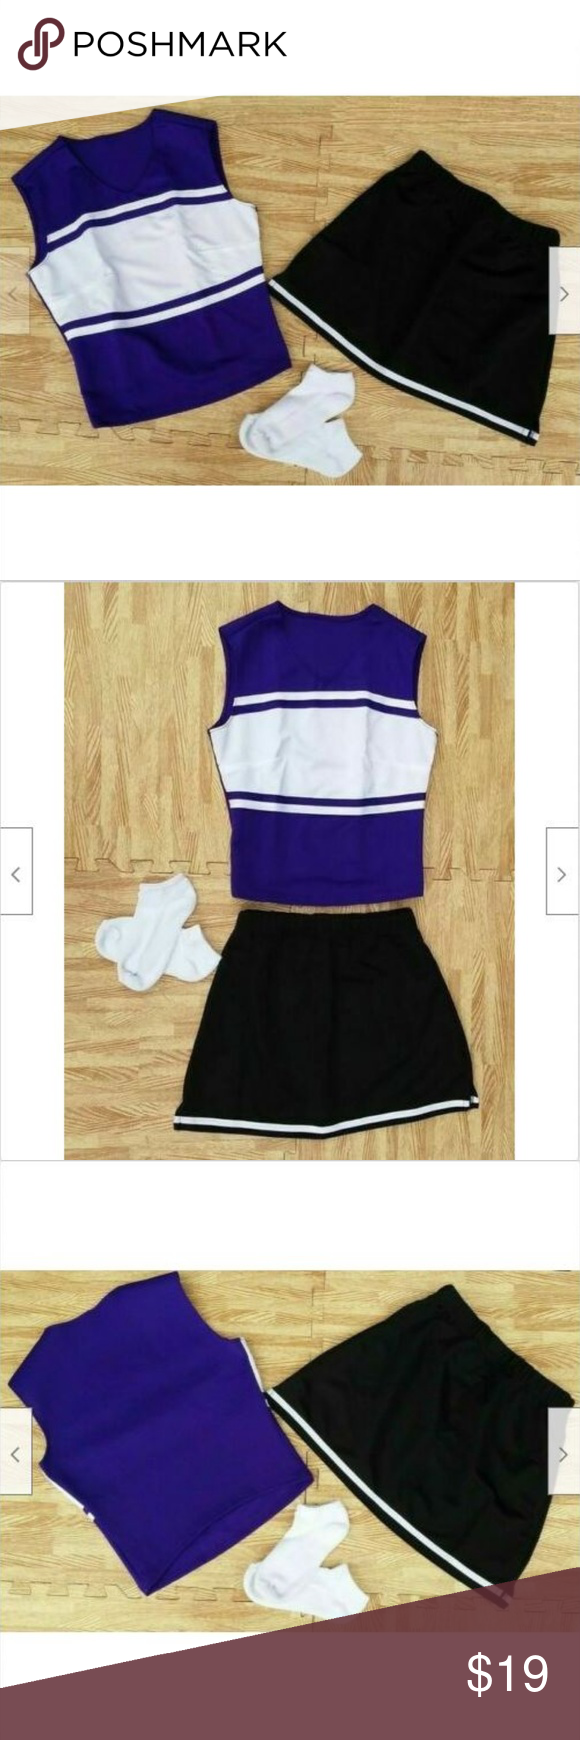 S/M REAL CHEERLEADER UNIFORM TOP SKIRT SOCKS NEW PURPLE shell top has a power stretch back for a nice contoured look. Tagged a Women M. RUNS SMALL. Measures a 36 chest. Will best fit a WOMEN'S STANDARD S/M TOP with a 33-35 bust line. BLACK skirt has 2 side slit vents . Tagged a Women M. Elastic waistband measures 26 unstretched. Will best fit a STANDARD WOMEN'S S/M BOTTOM with a 26-28 waist and up to 38 hips. Approx 15 long. 100% Polyester. NEW WITHOUT TAGS! WHITE cheerleader sports socks  #cheerleaderuniform